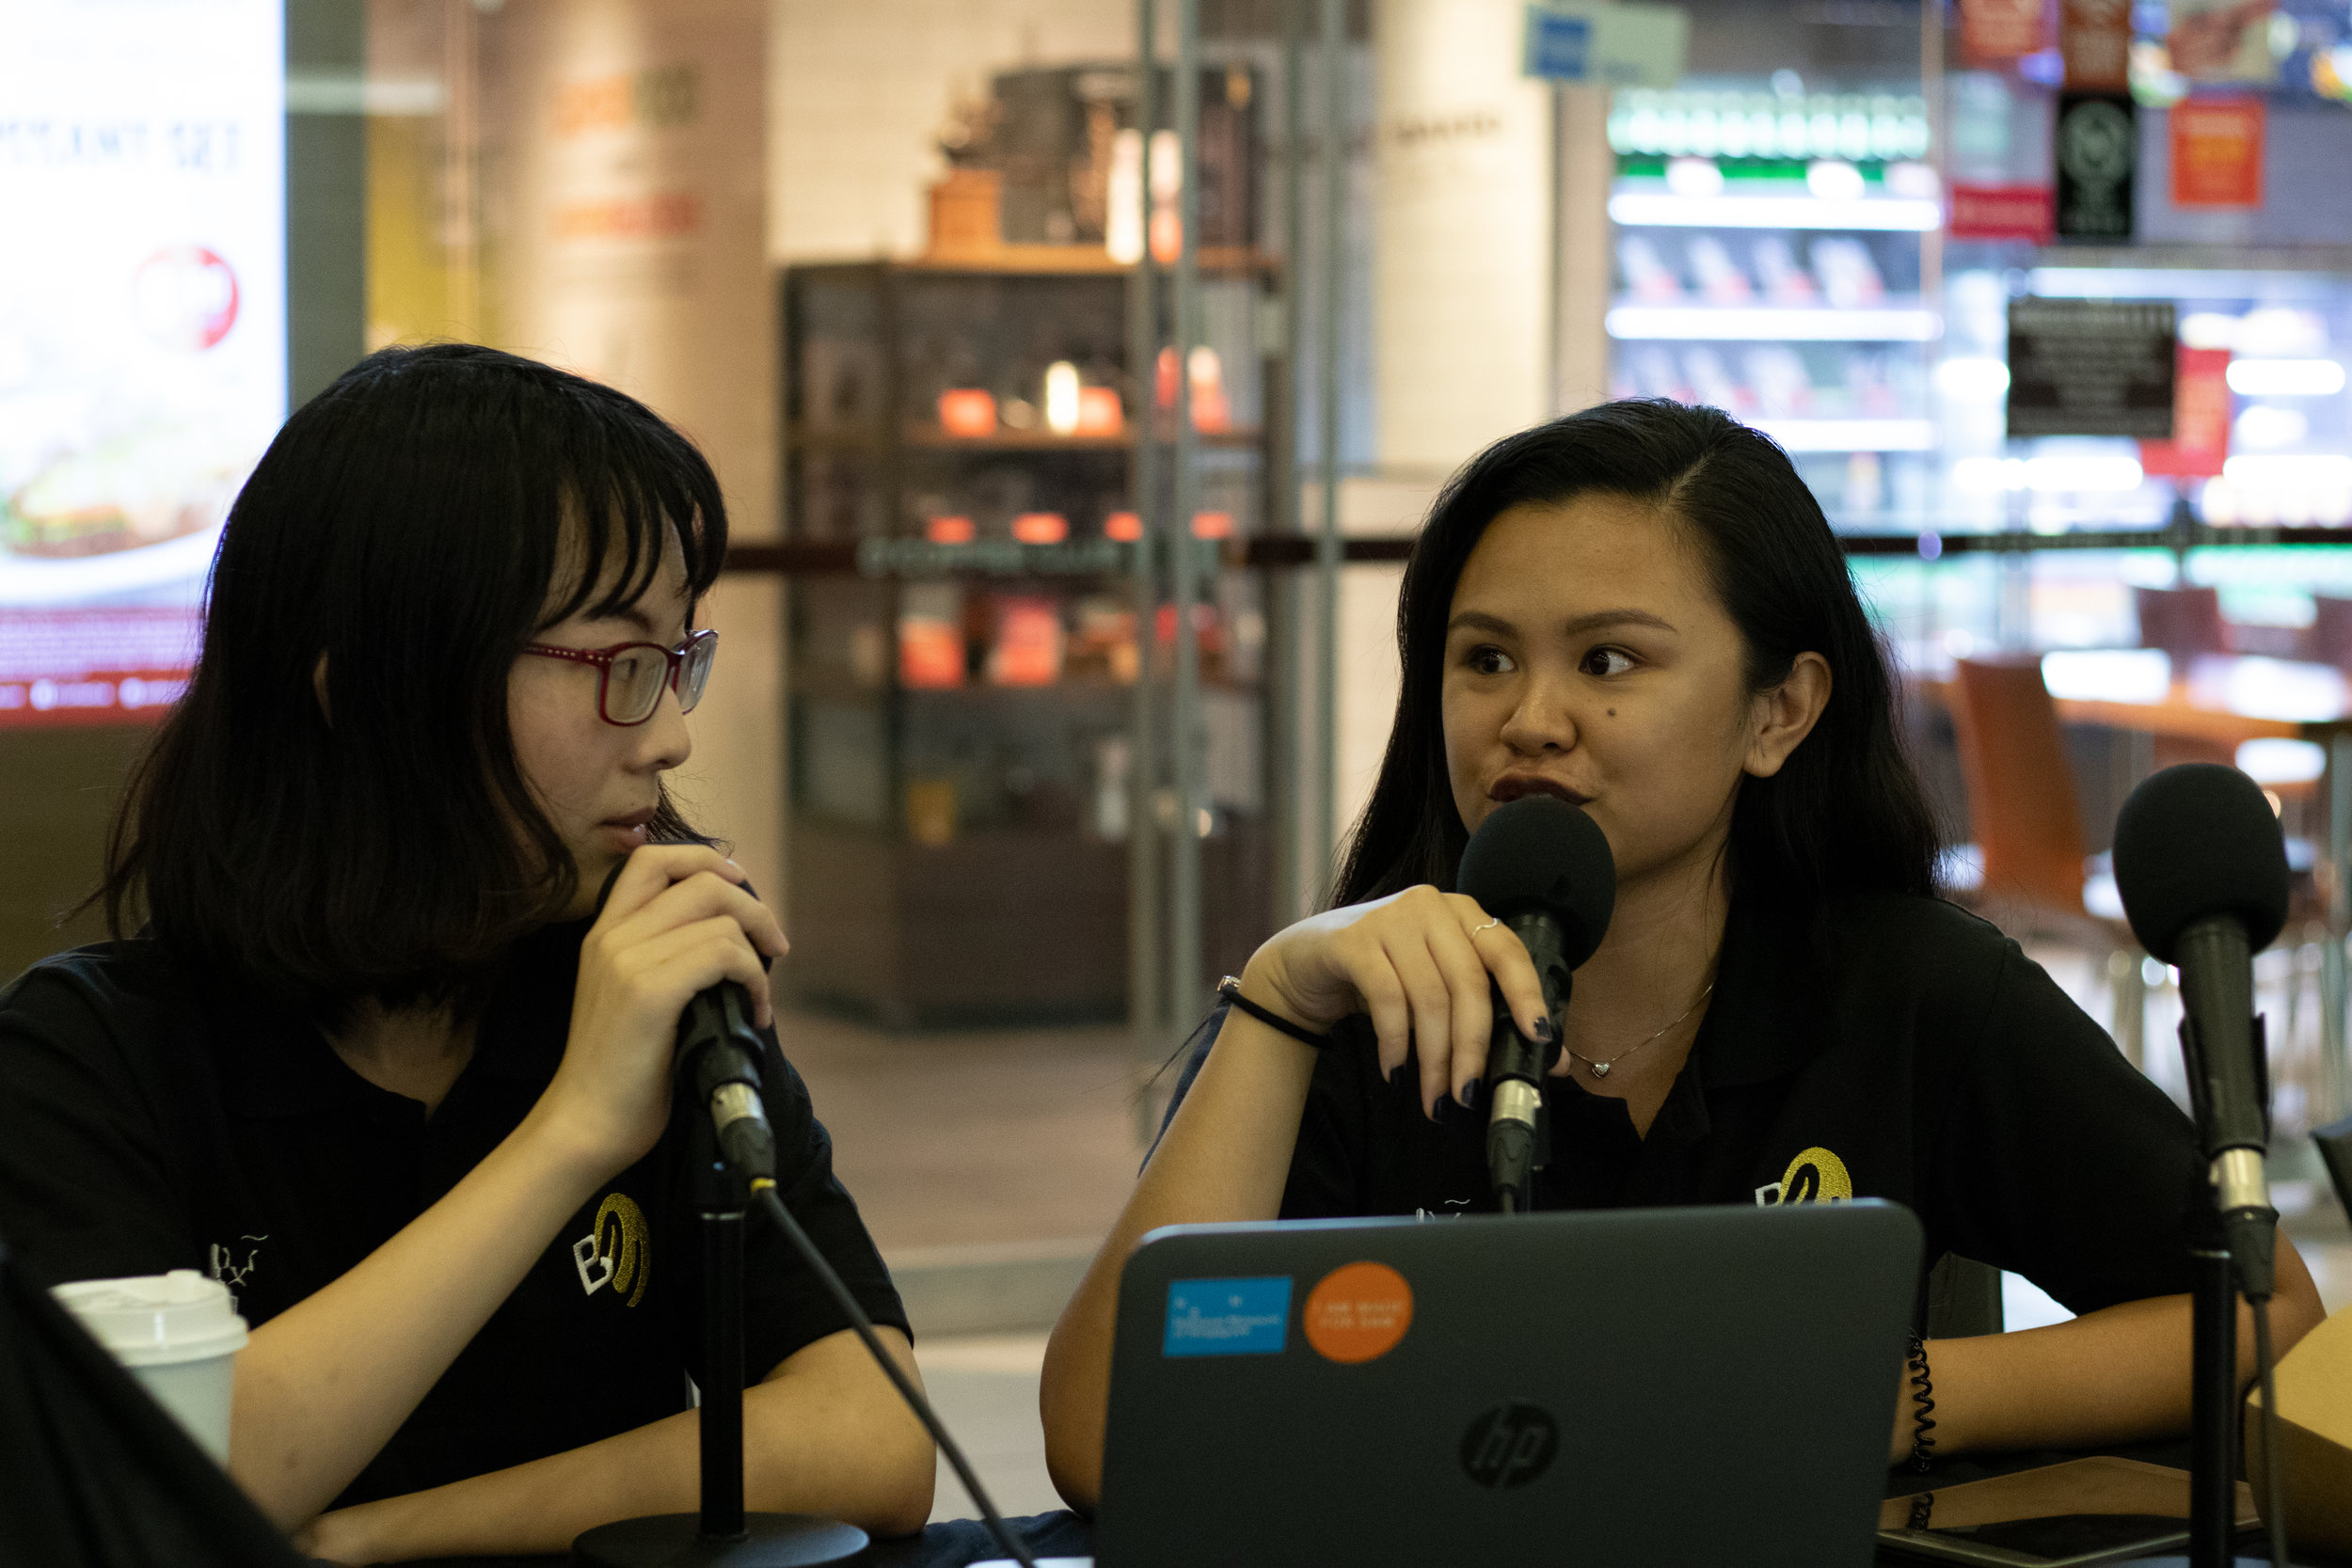 FE Day & Vivace - Unsure about which freshmen camps or co-curricular clubs to join? Our radio jockeys are here to help answer some of your queries through their live interviews with representatives of various camps and clubs.